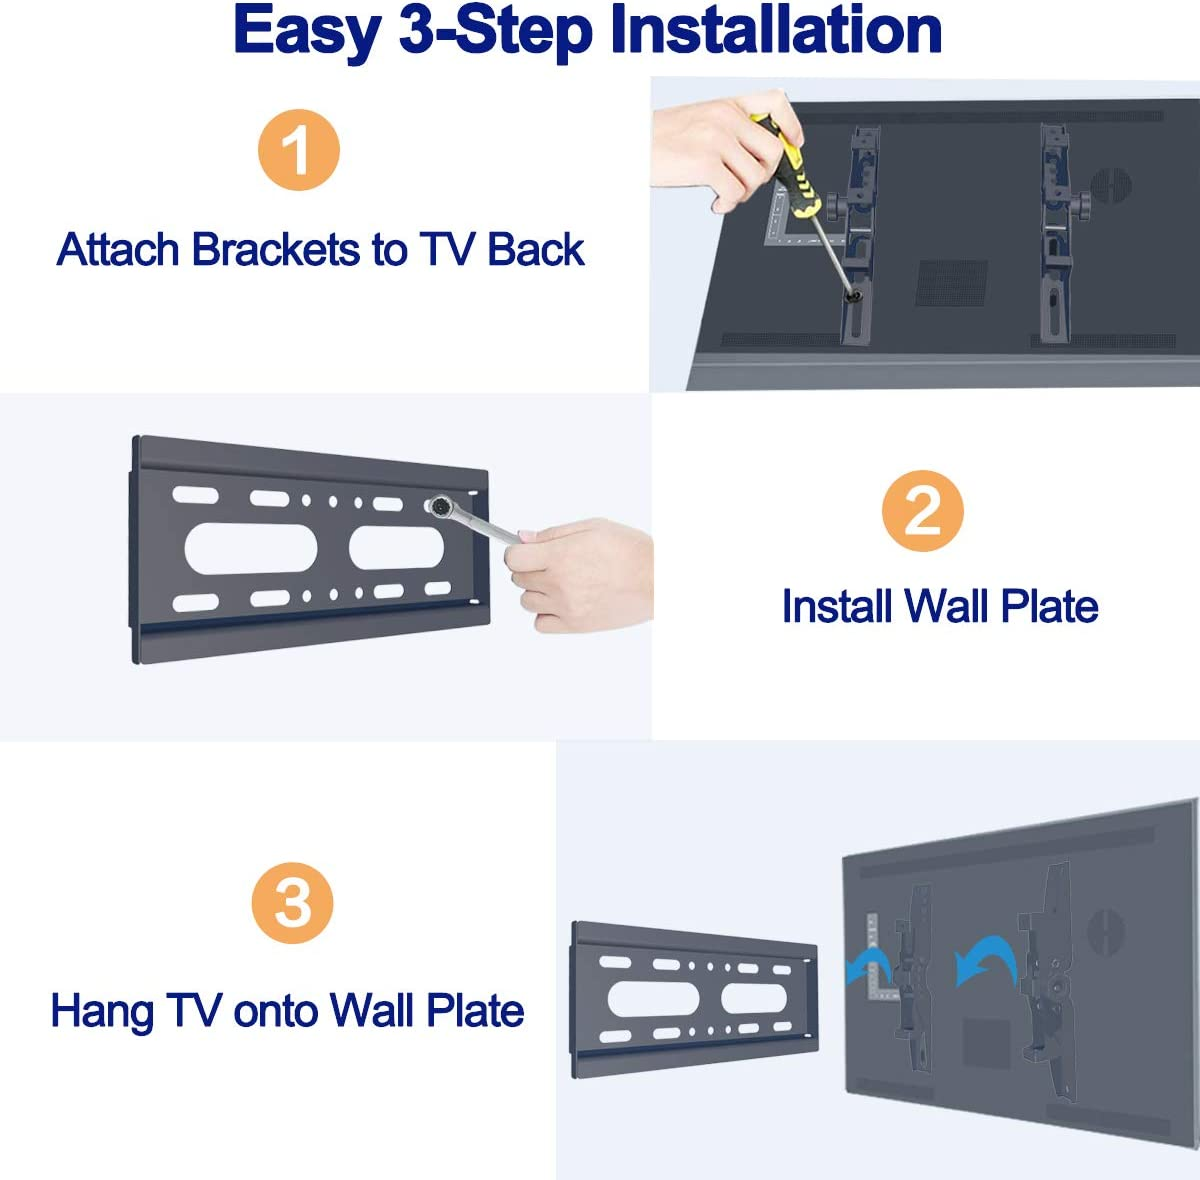 Space Saving Low Profile with Screws and Bubble Level Max Load Capacity 55lbs SJBRWN Tilt TV Wall Mount Bracket Most 14-42 Inch LCD LED Flat Curved Screen Small TV Monitor Mount VESA Up to 200x200mm